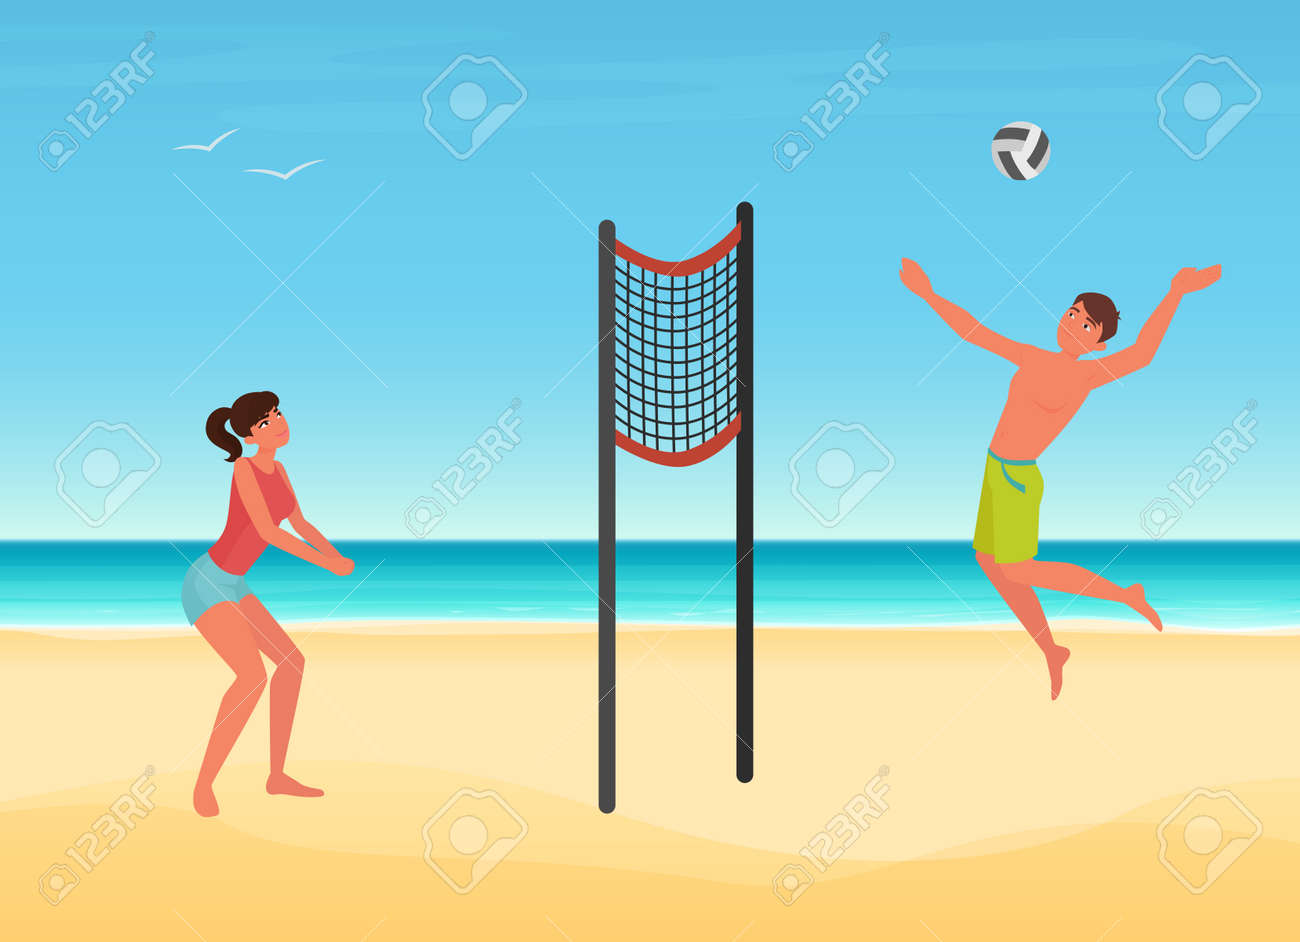 Couple people play volleyball on summer sea beach of tropical island vector illustration. Cartoon young woman man player character playing ball, jumping, summertime sport travel vacation background - 169878359